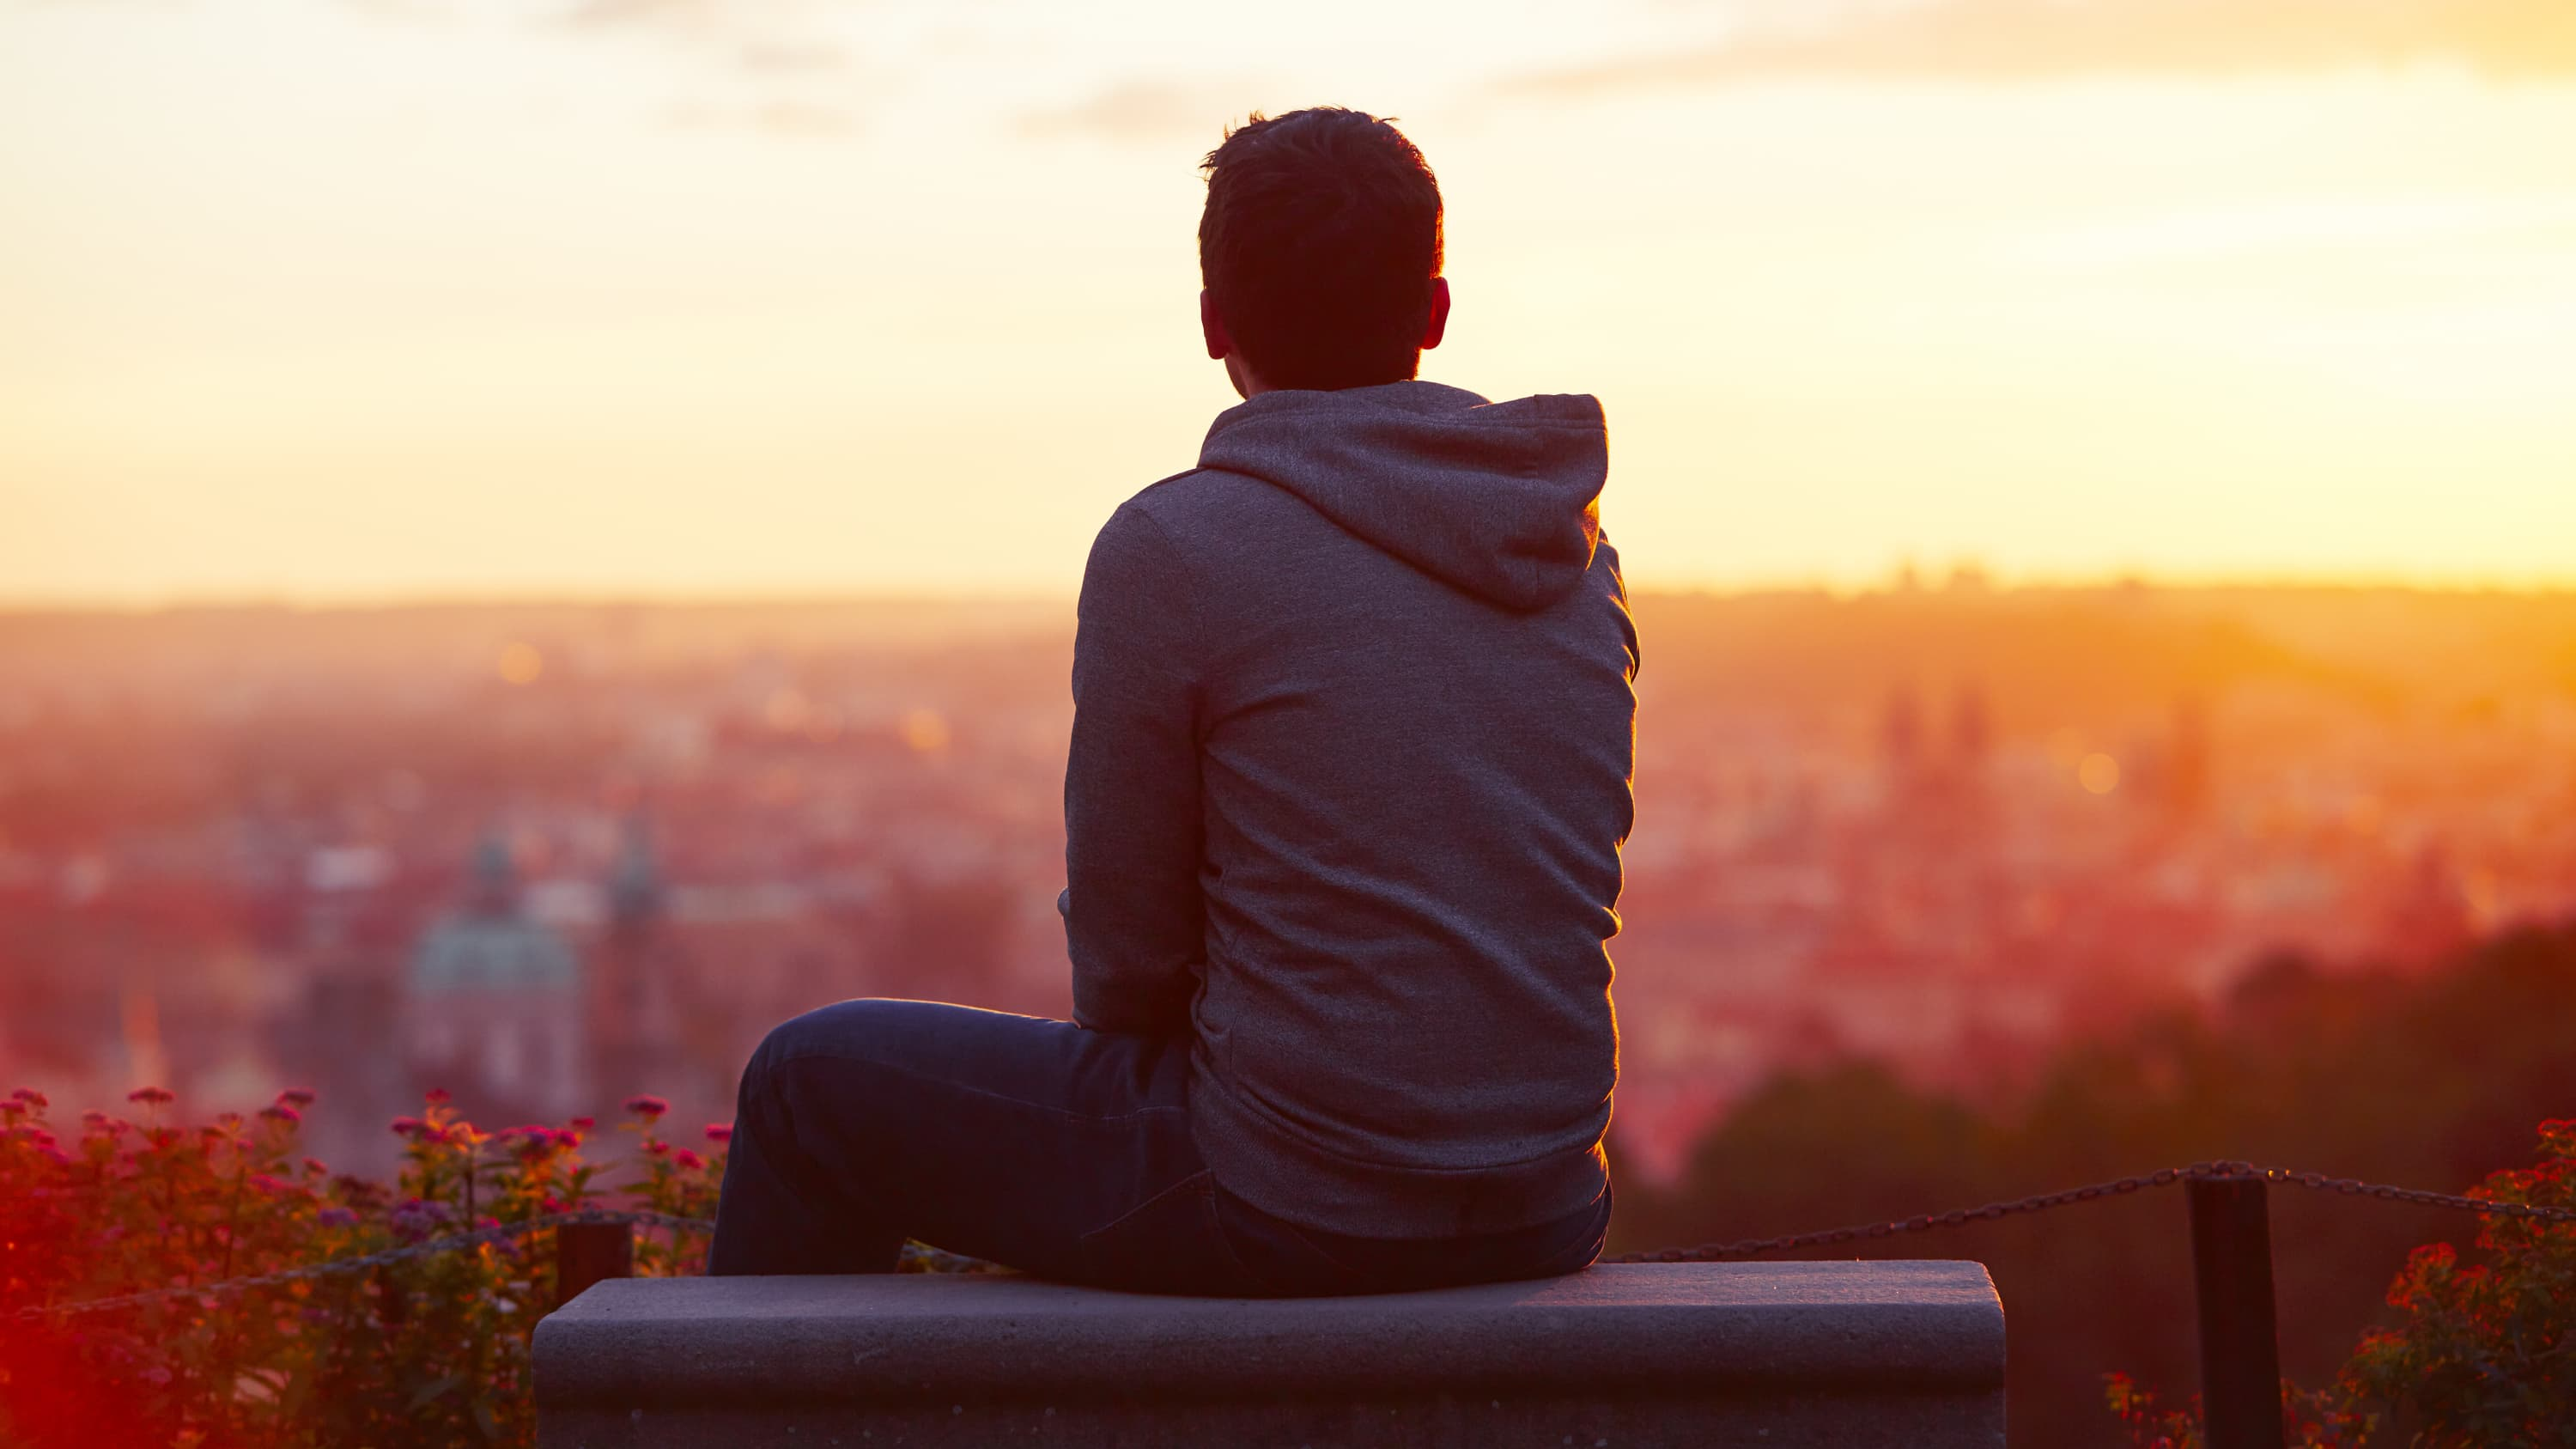 person looking out at the sunset, possibly thinking of palliative care